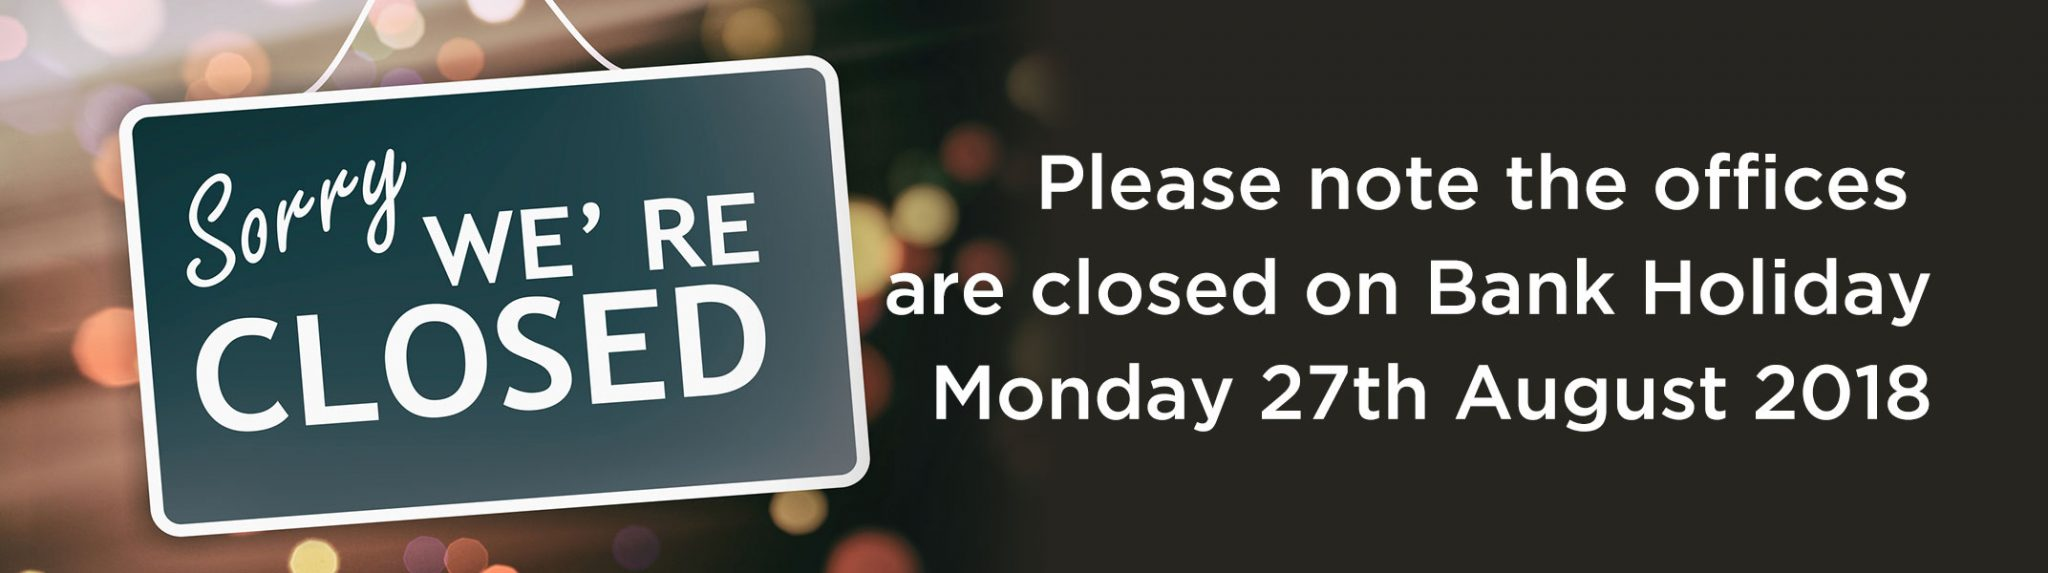 Closed 27th August Bank Holiday